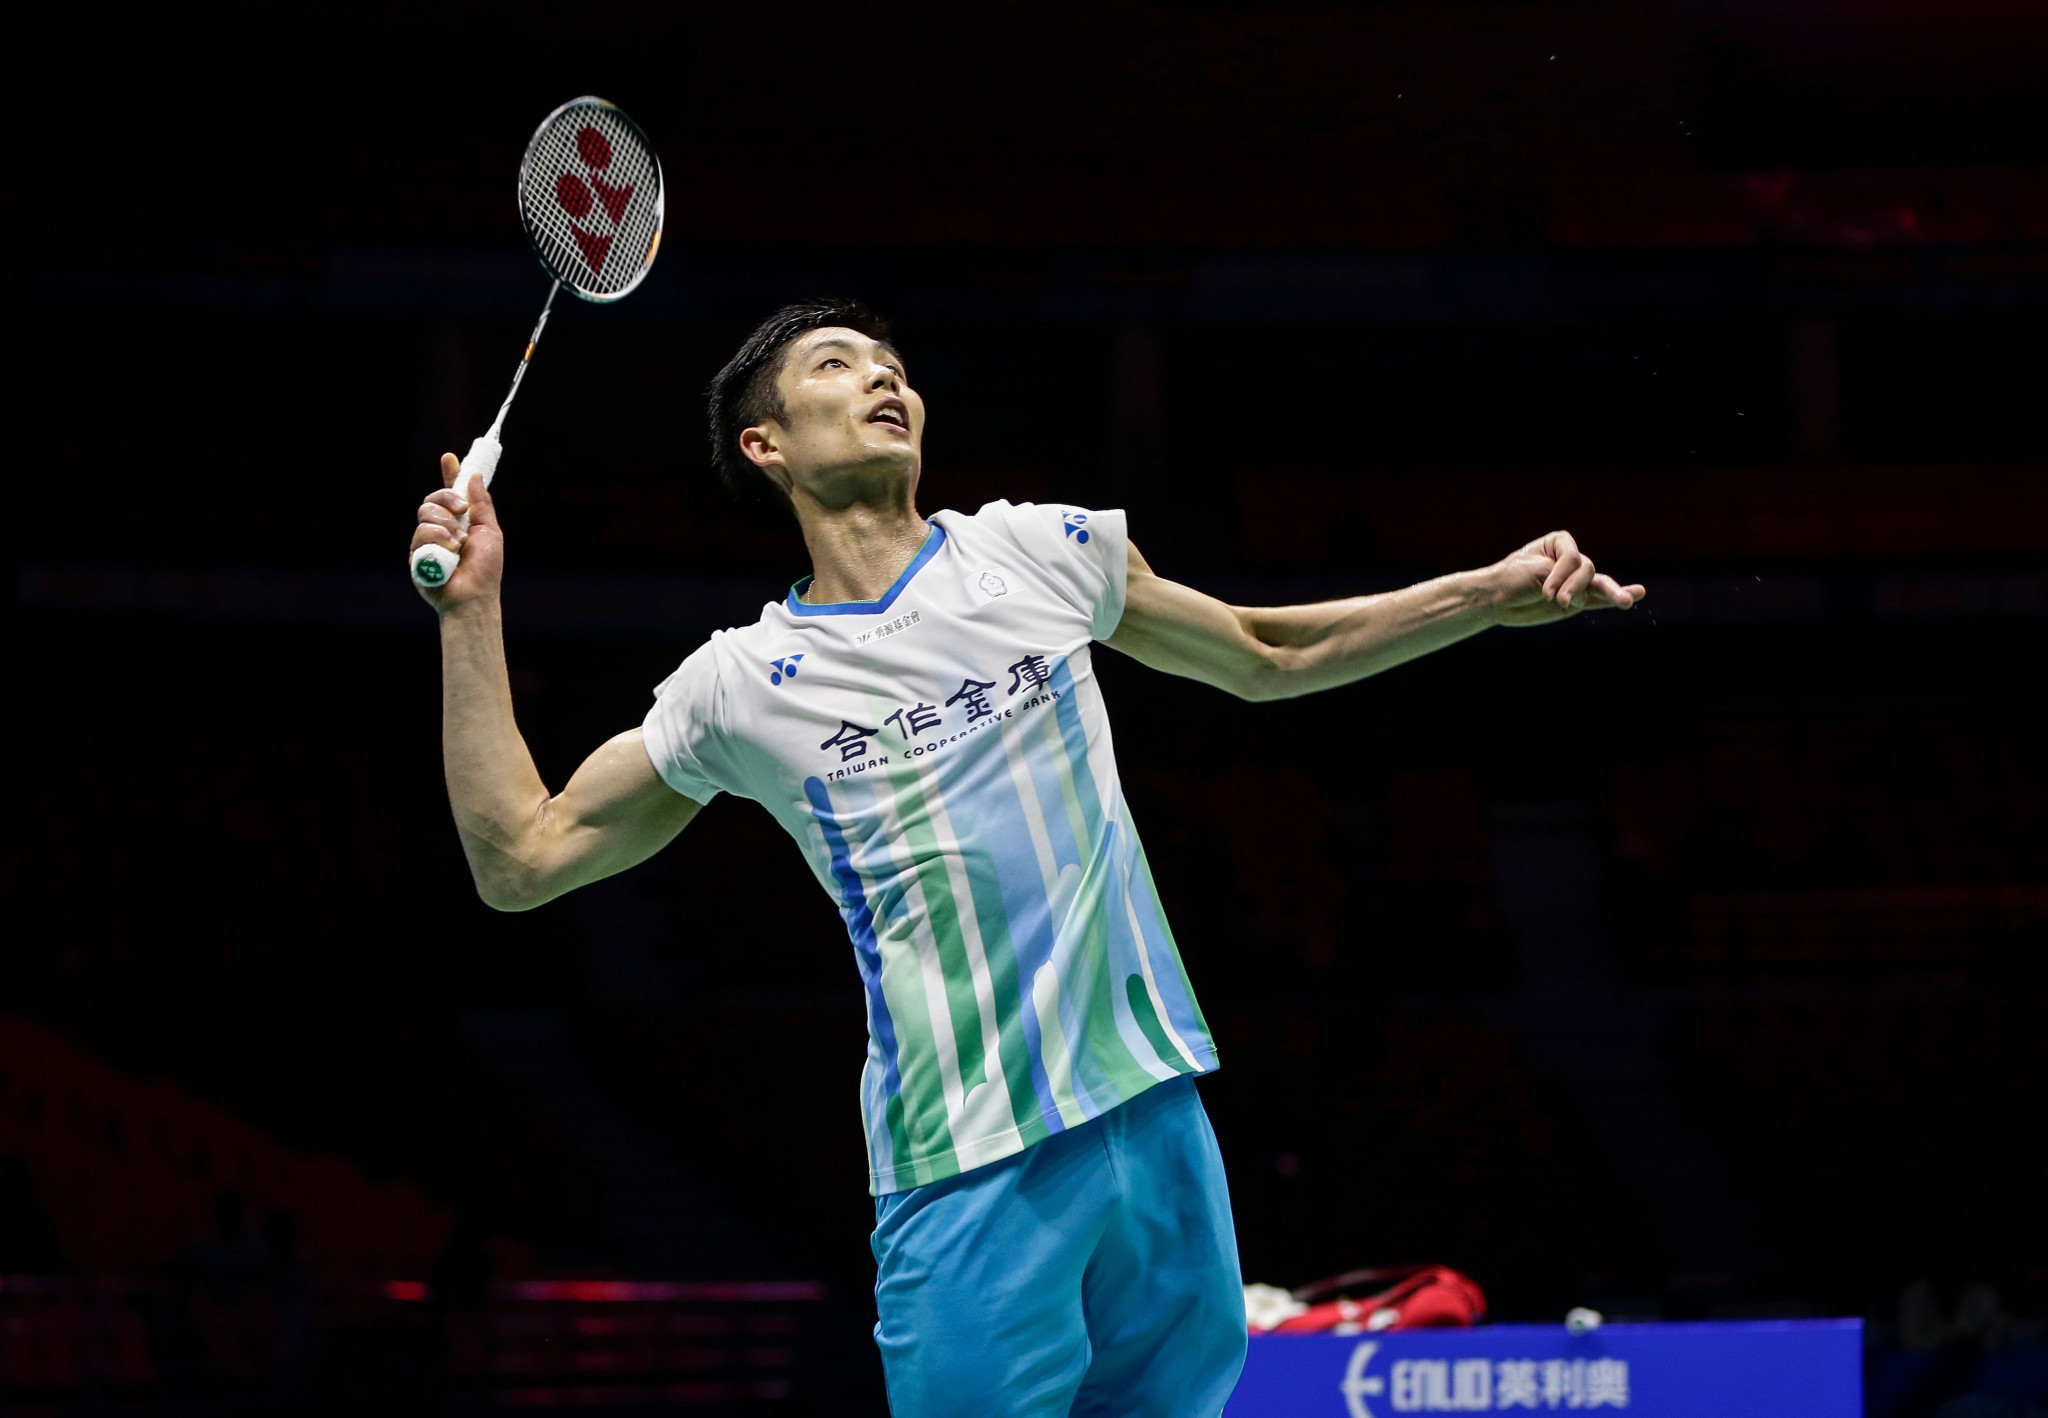 Top seed Chou Tien-chen moved a step closer to winning the men's singles title at the BWF Australian Open after coming through his quarter-final tie in Sydney today ©Getty Images